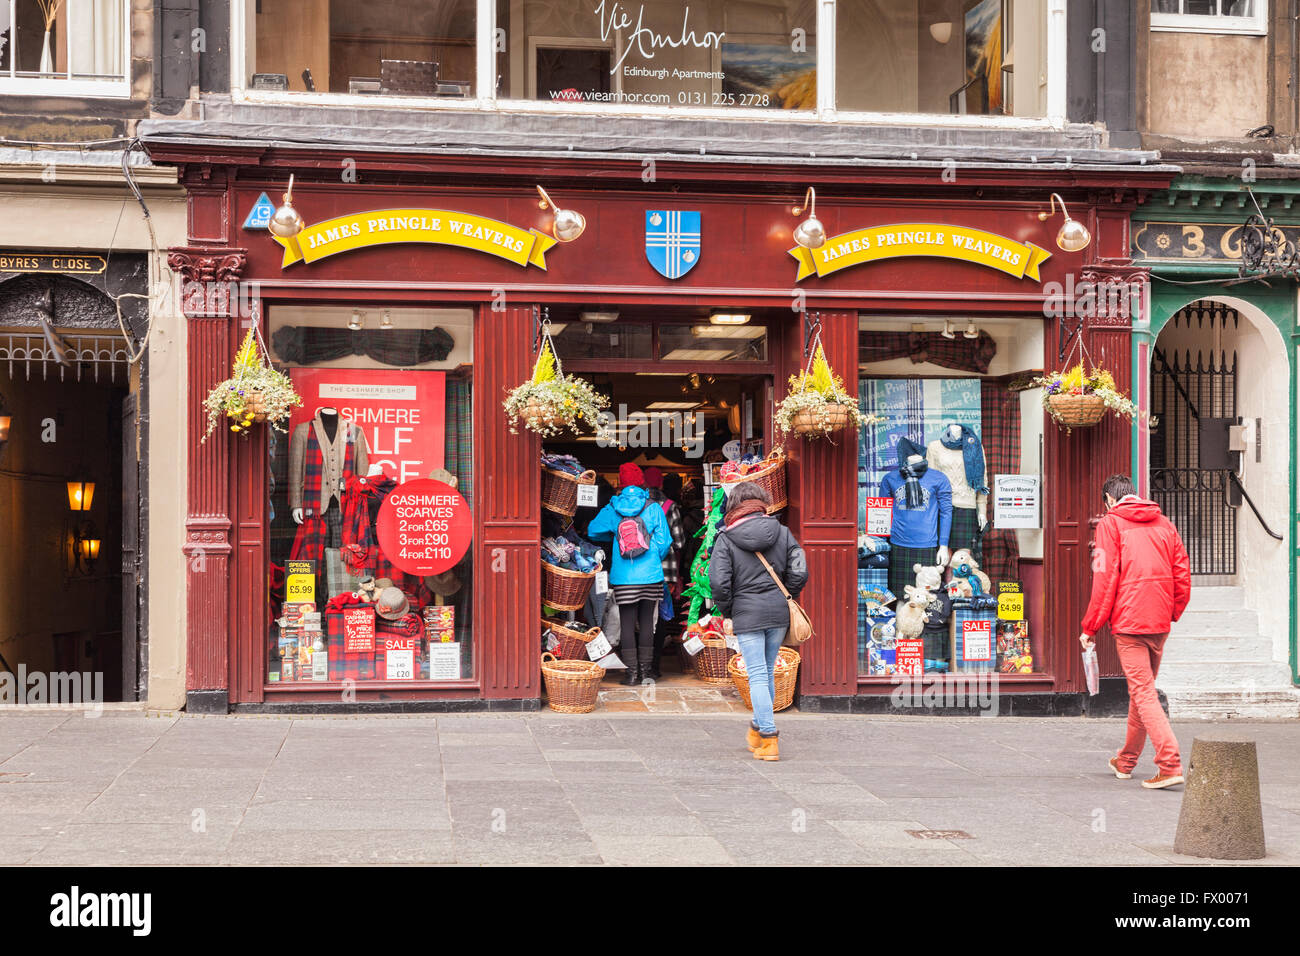 James Pringle Weavers, cashmere and tartan shop in the Royal Mile, Edinburgh, Scotland, UK Stock Photo